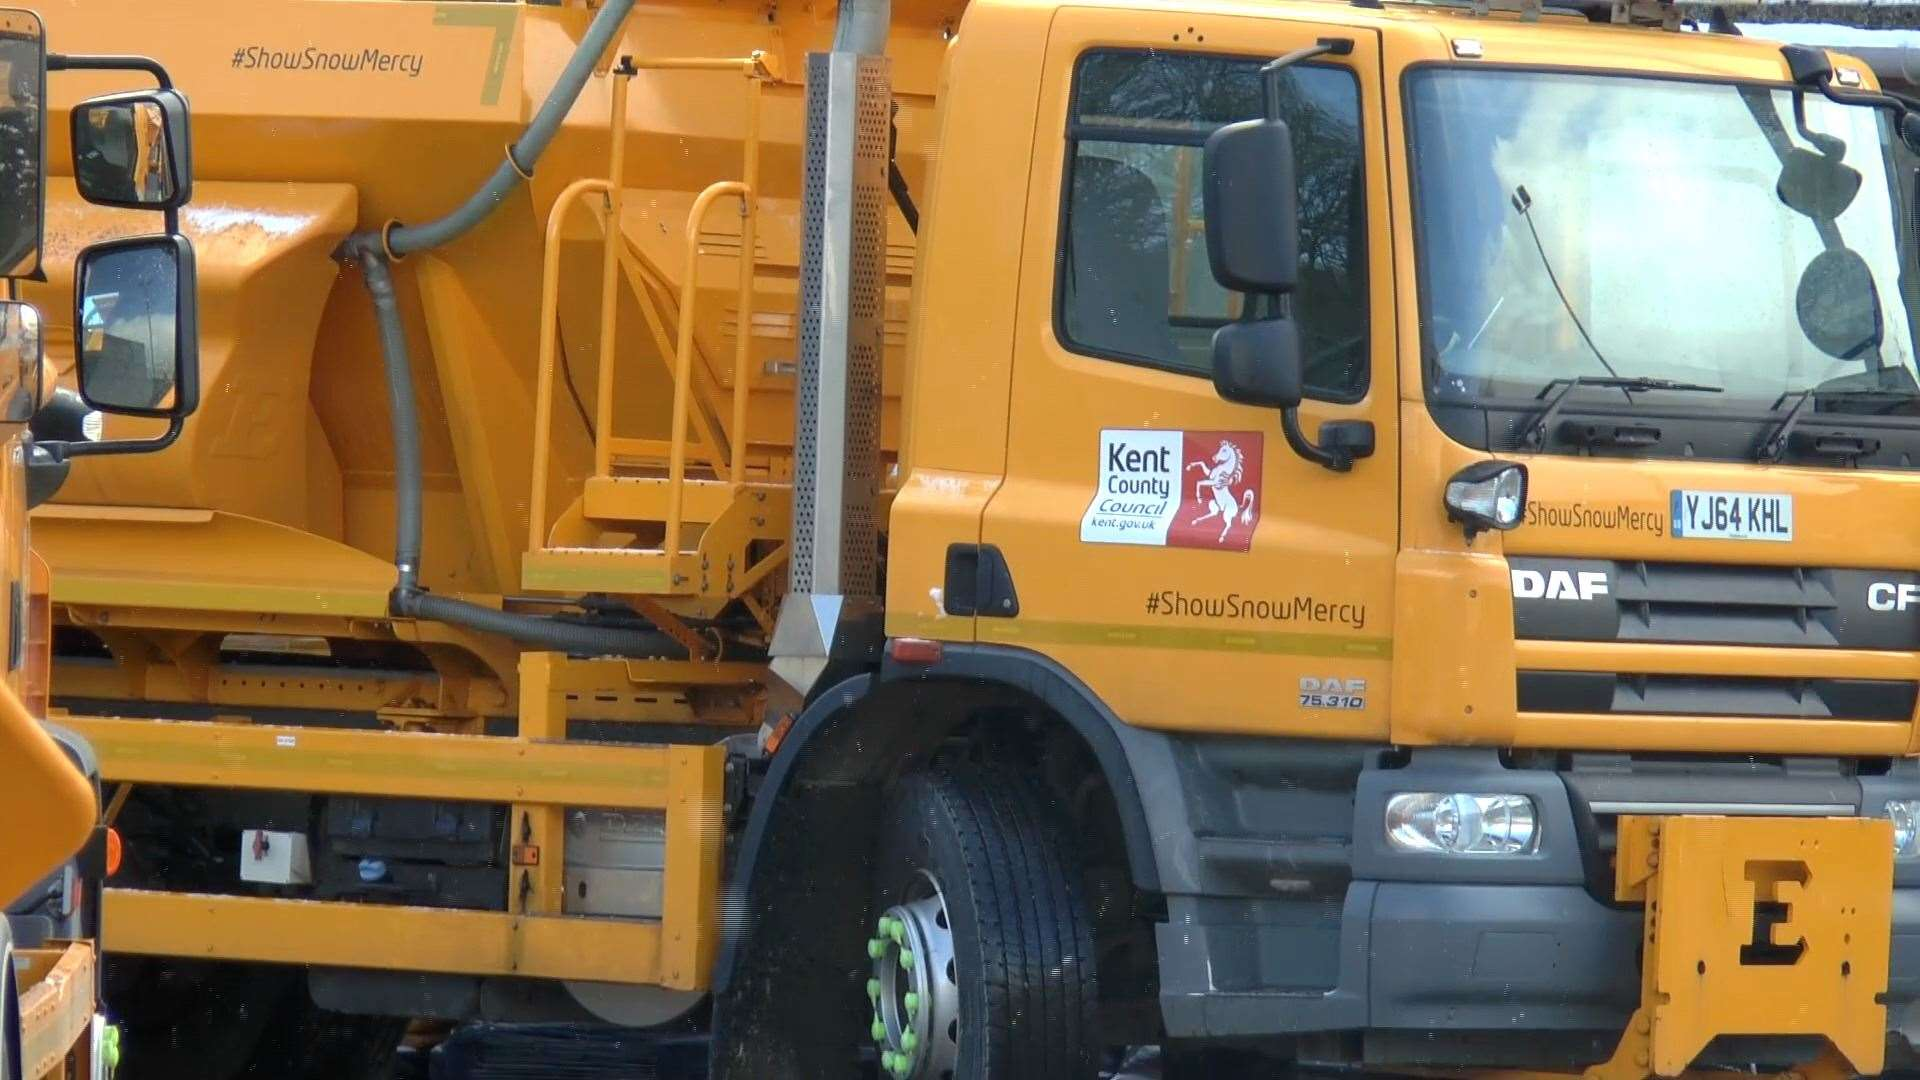 Road gritting takes place tonight